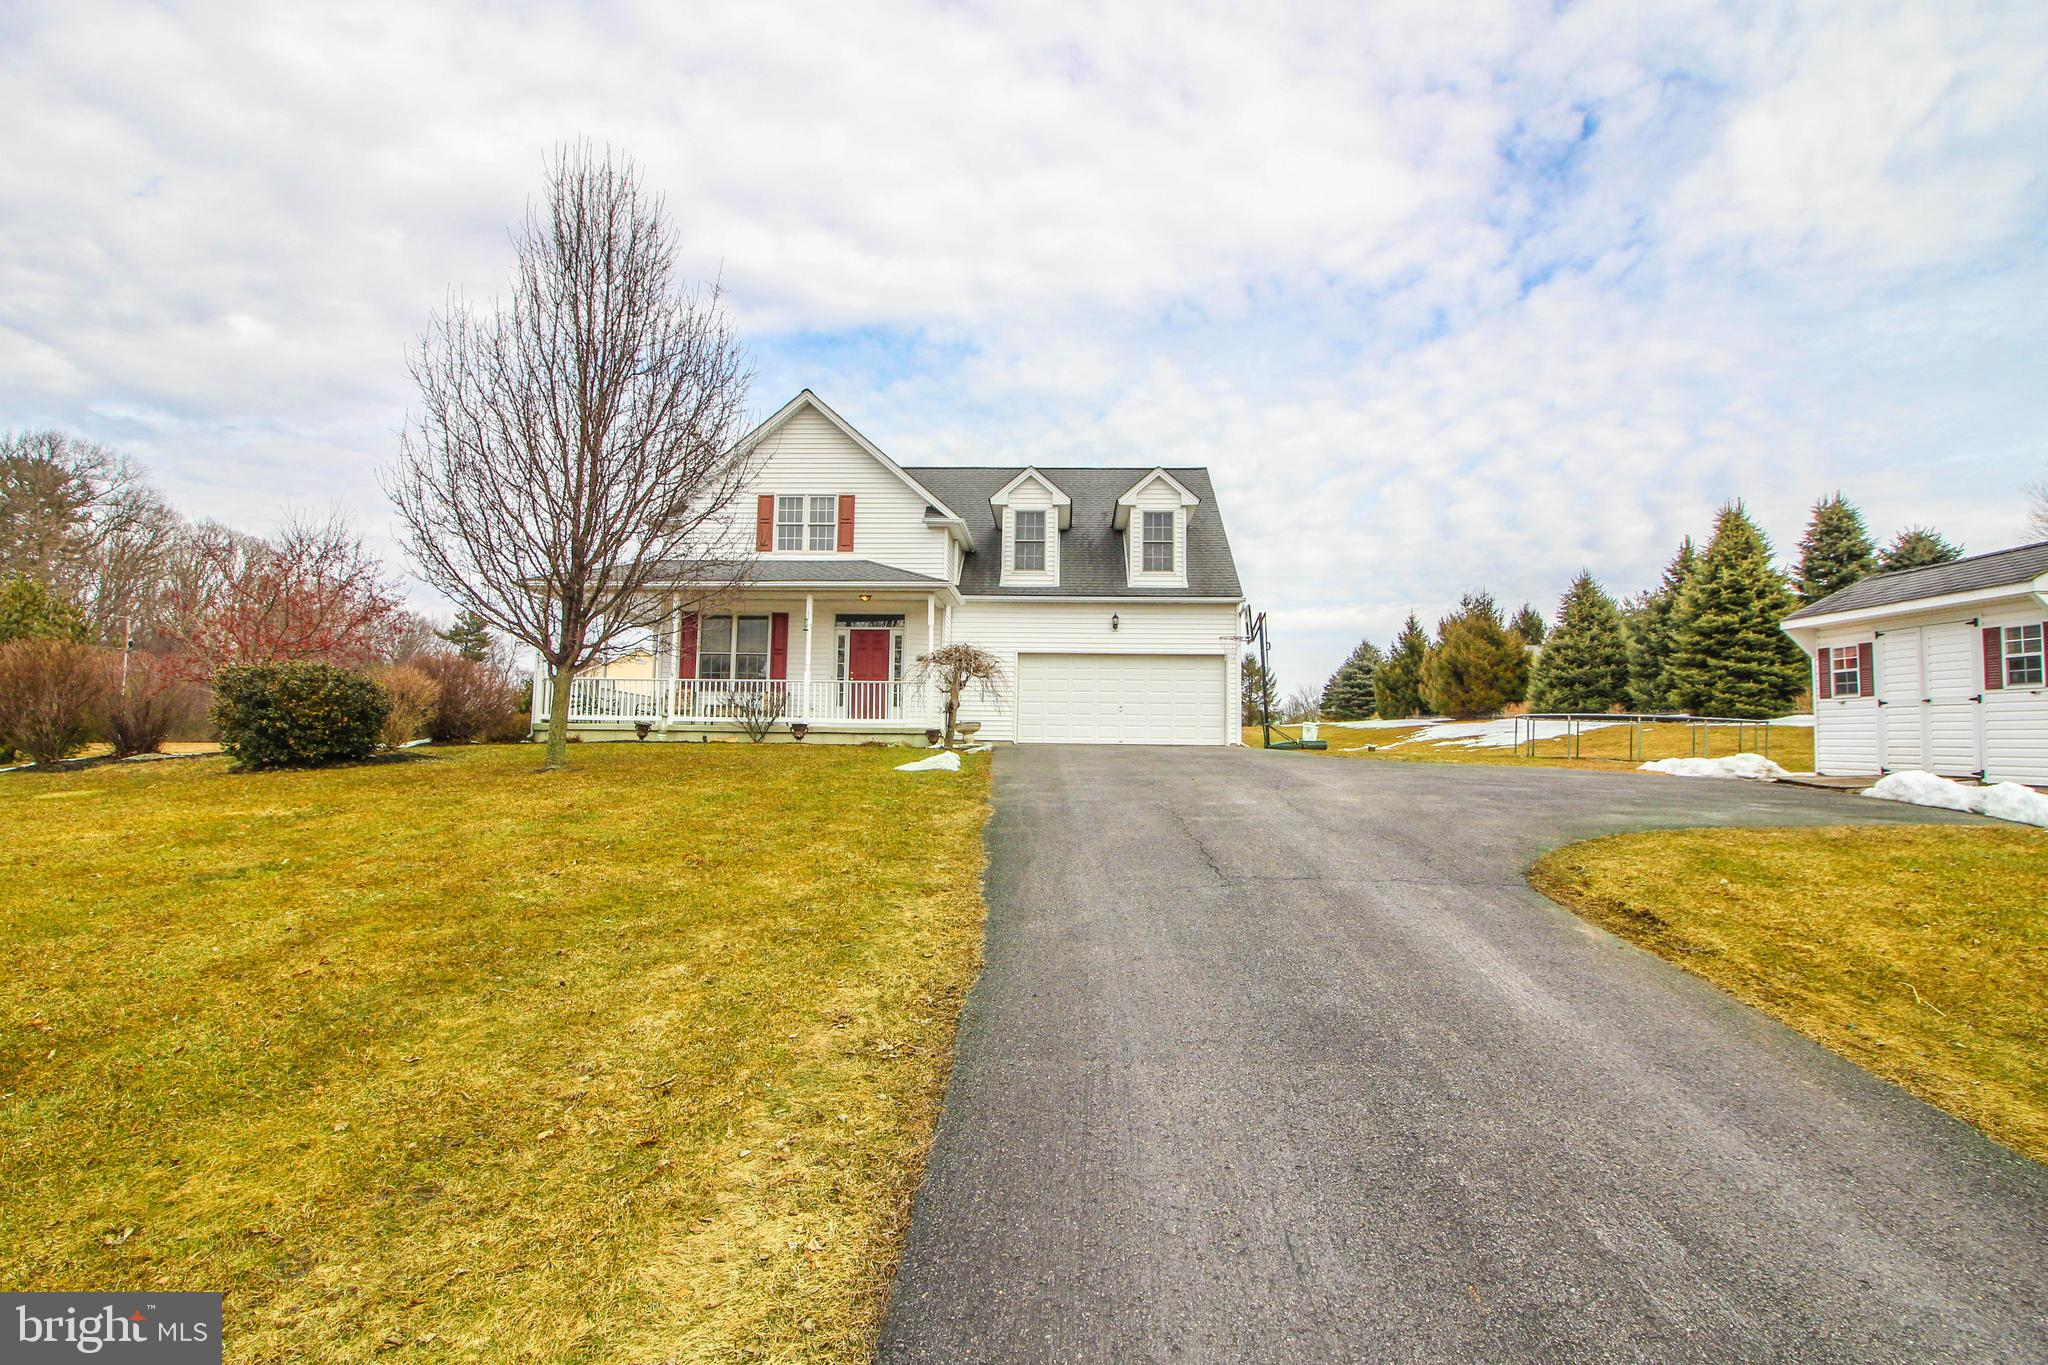 630 MCINTOSH LANE, ANDREAS, PA 18211